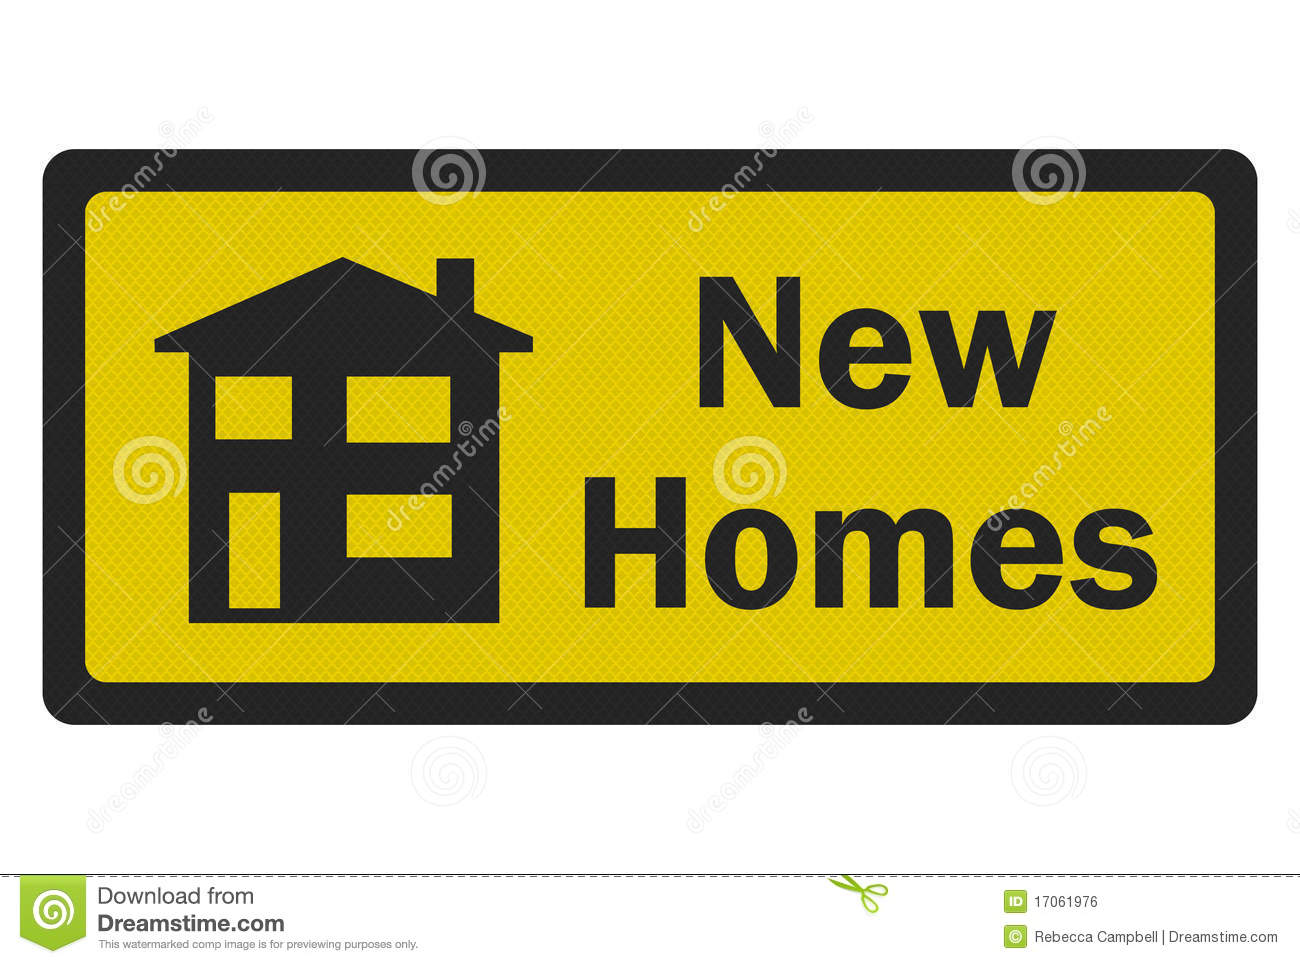 39 new homes 39 photo realistic sign royalty free stock image for New home sign